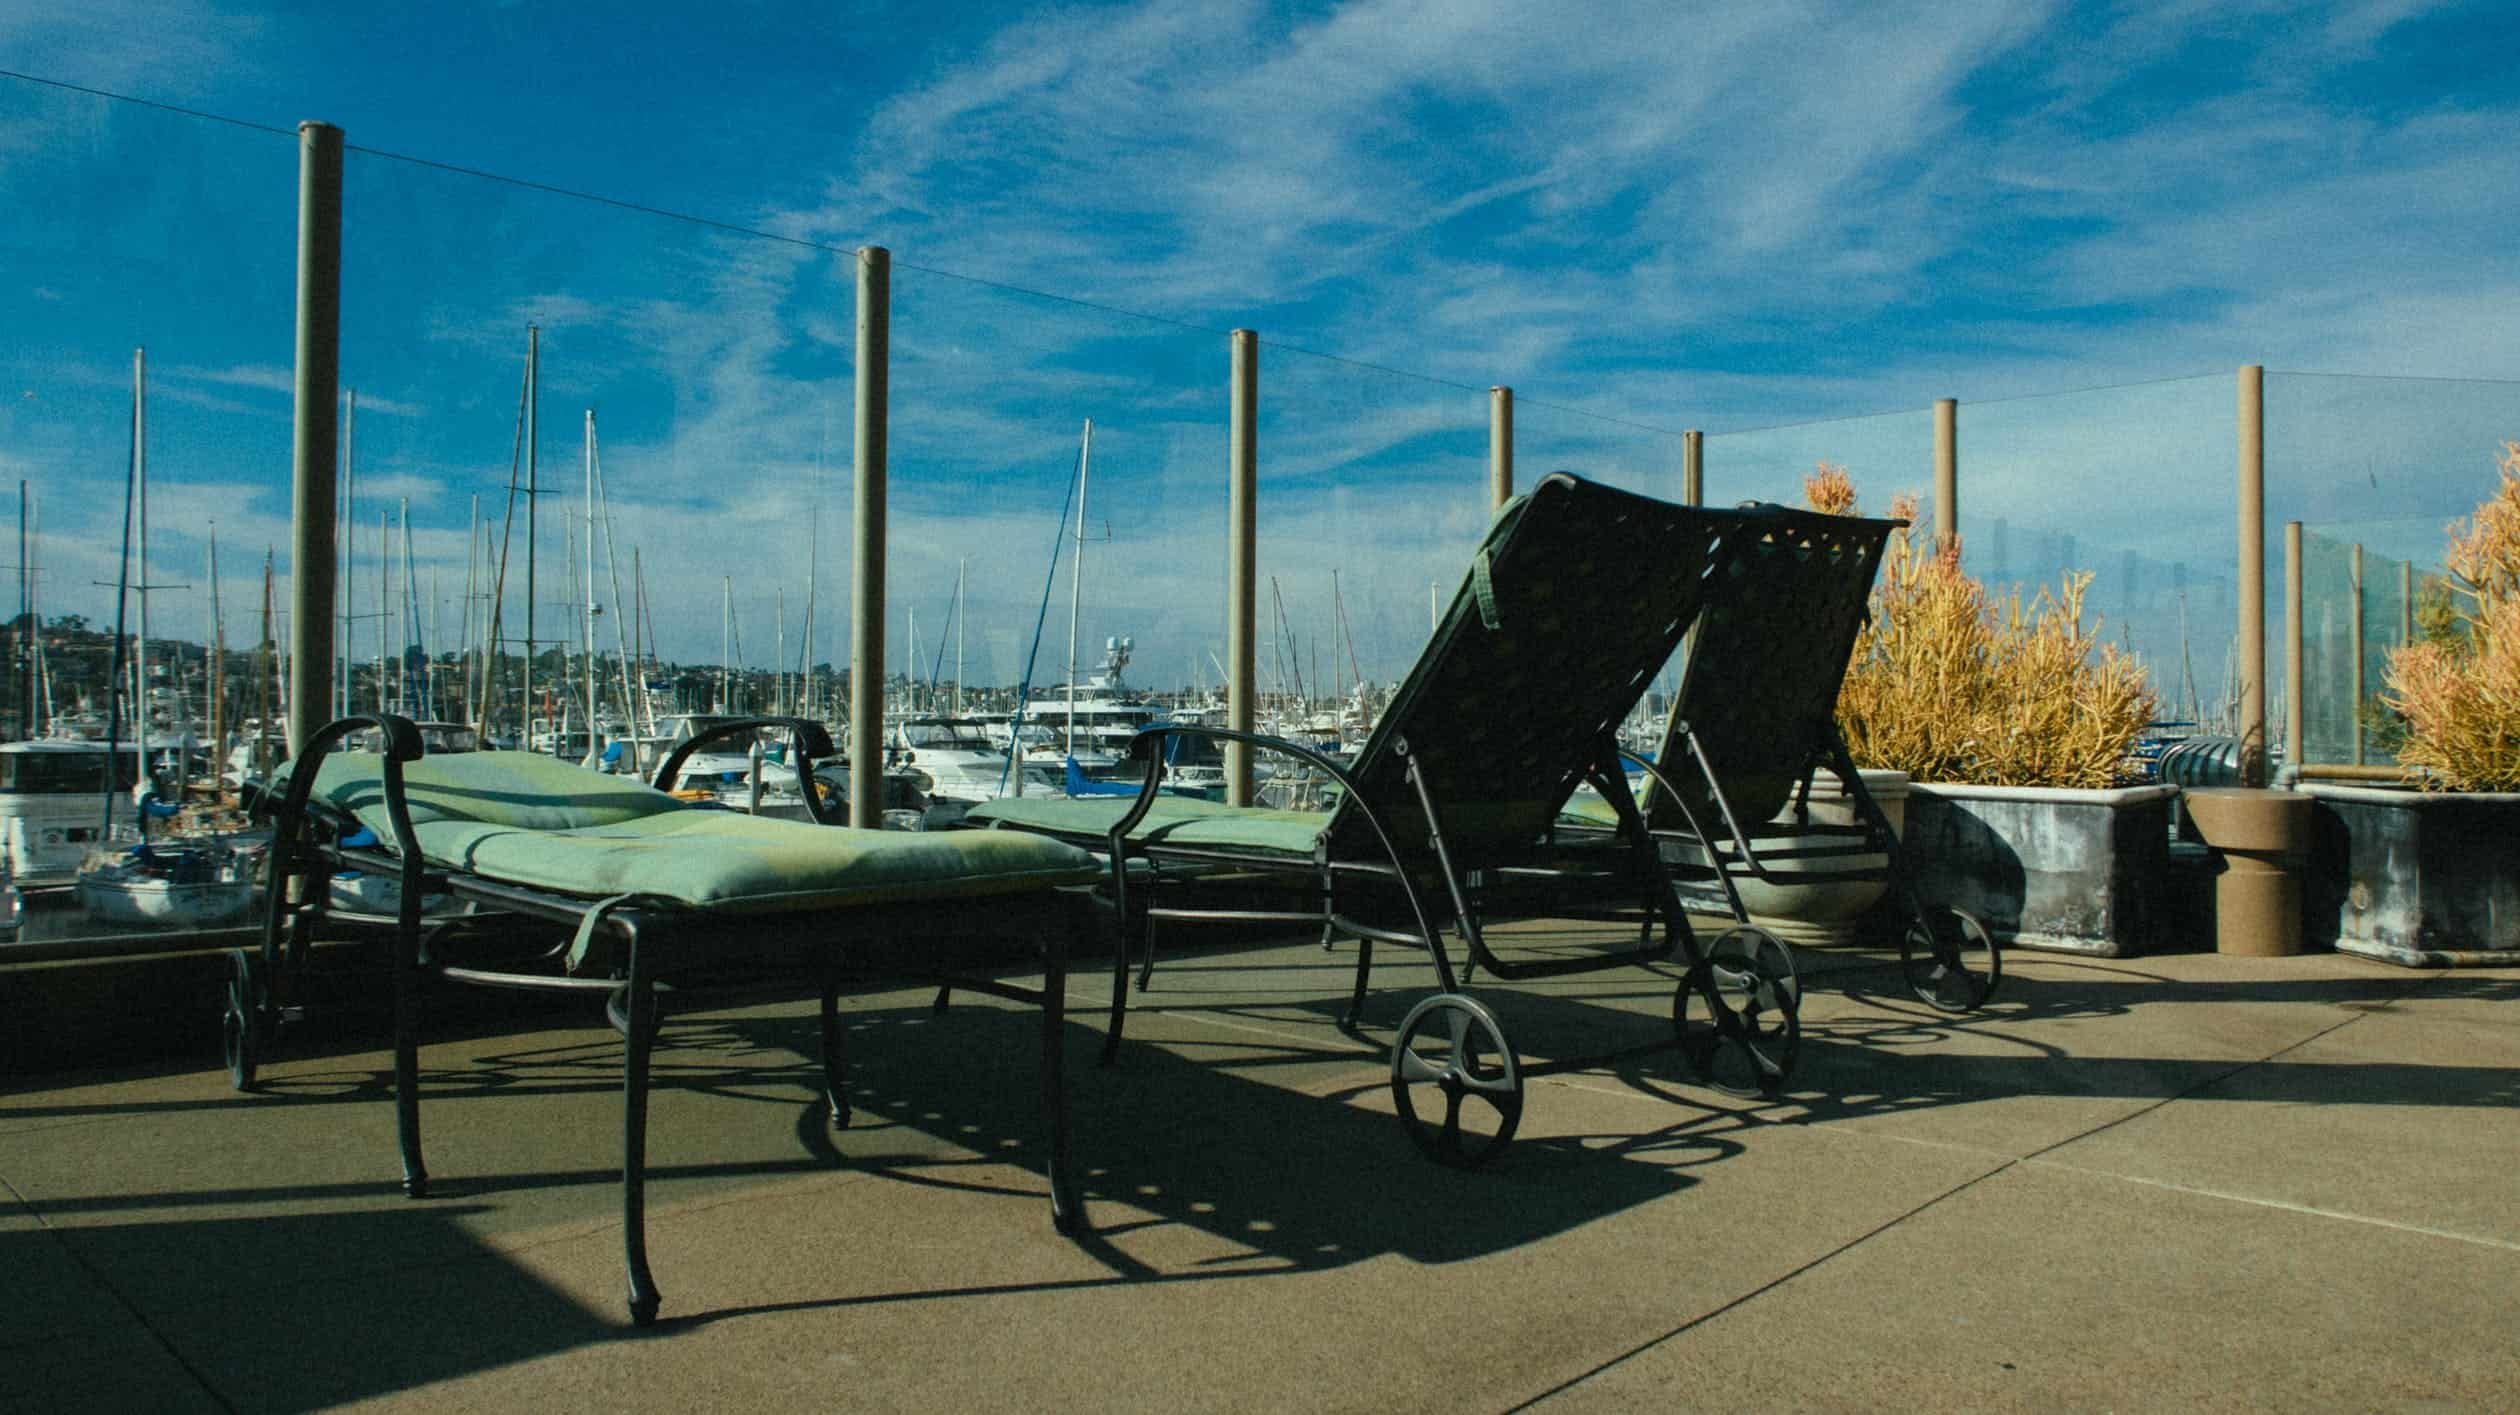 patio furniture exposed to salty air